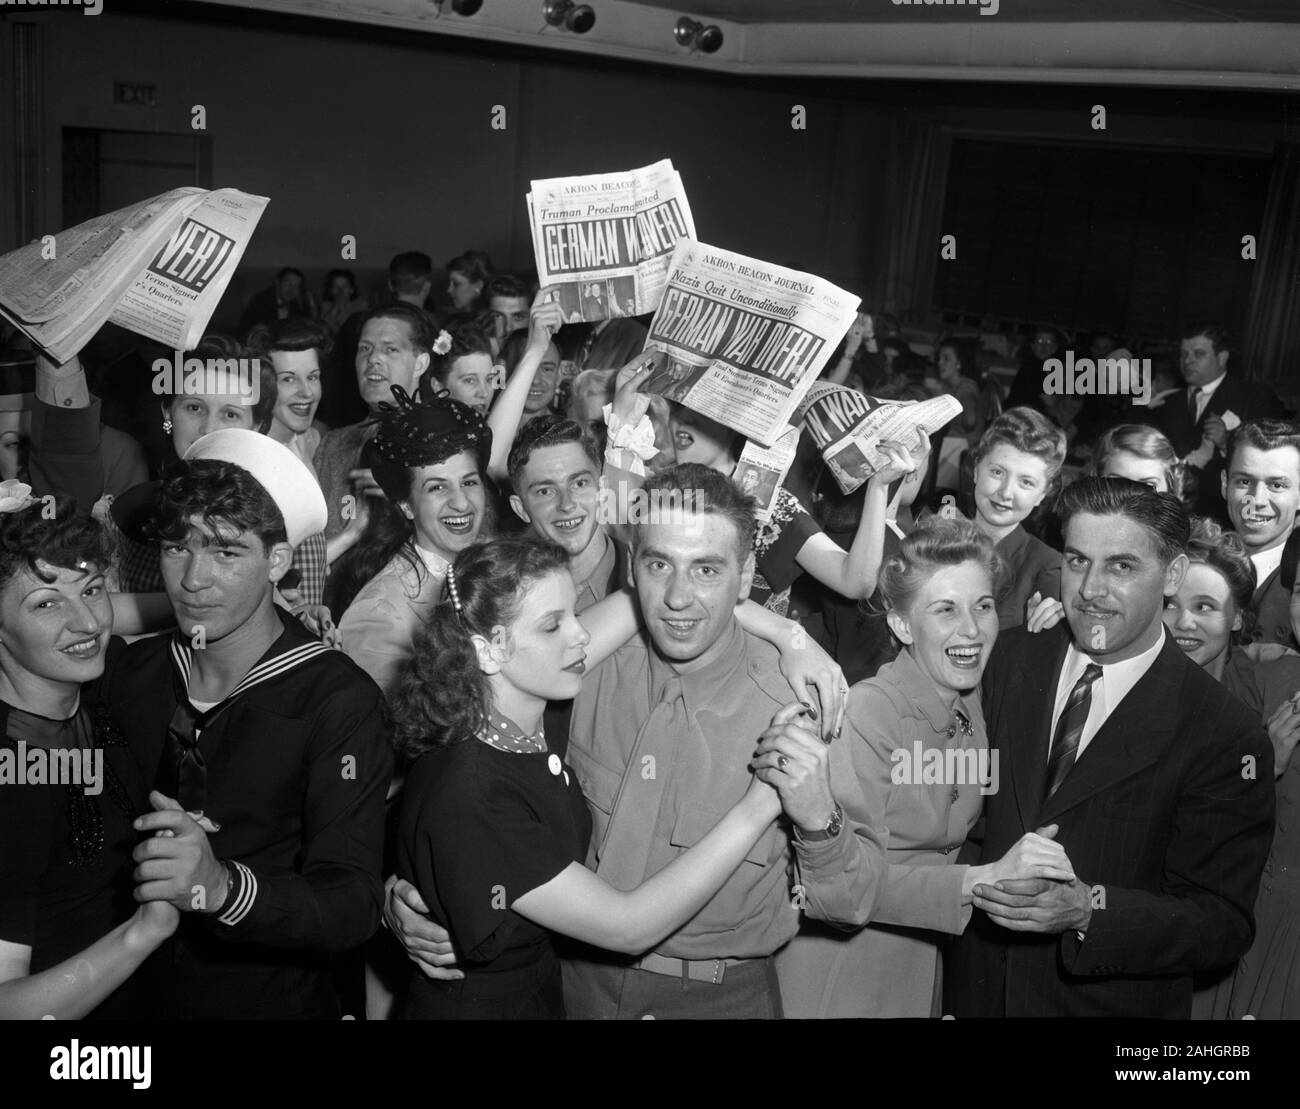 Servicement and others celebrate the surrender of Germany during World War Two, in Akron Ohio on May 7, 1945 Stock Photo